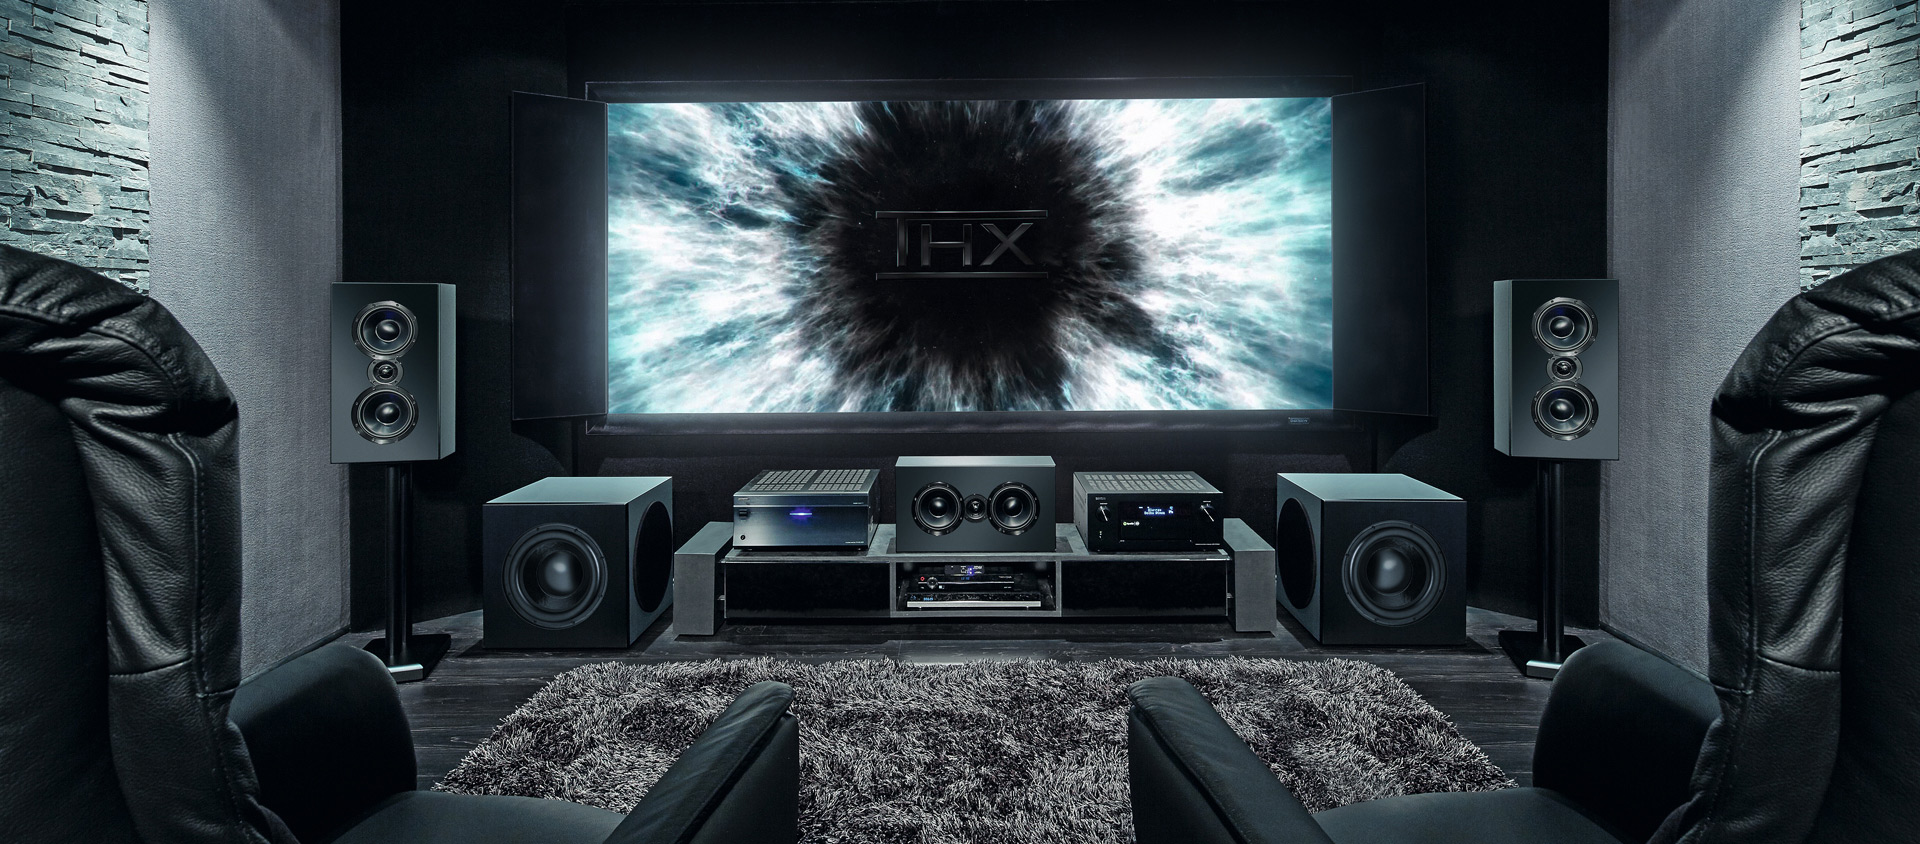 Cinema ultra home cinema hauptmen magnat the - Thx home cinema ...